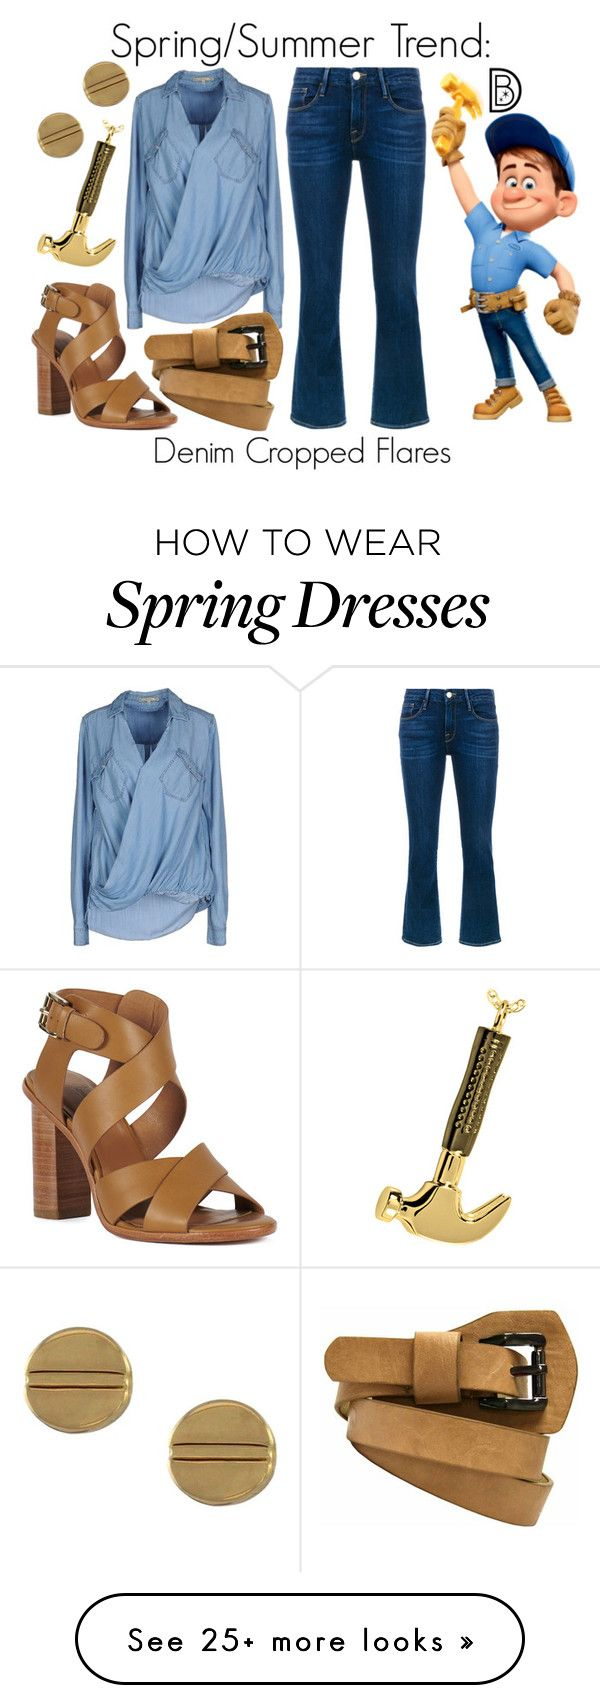 """Spring/Summer Trend: Denim Cropped Flares"" by leslieakay on Polyvore featuring Frame Denim, Pepe Jeans London, Avery, Vince Camuto, disney, springtrends, summerstyle and disneybound"